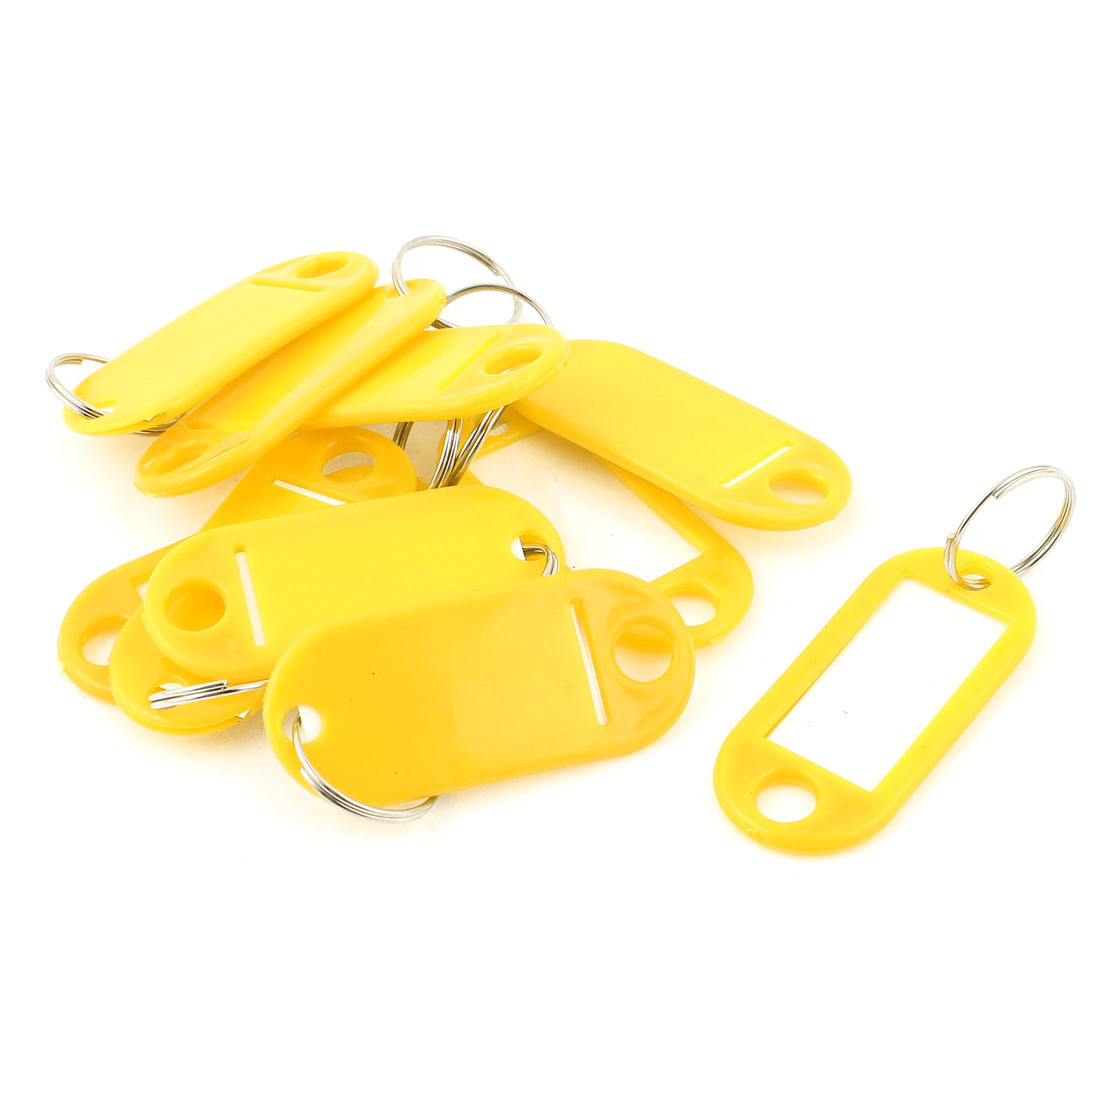 10Pcs Metal Ring Yellow Plastic Oval Key Fobs Luggage ID Label Name Tag Keyring Keychain